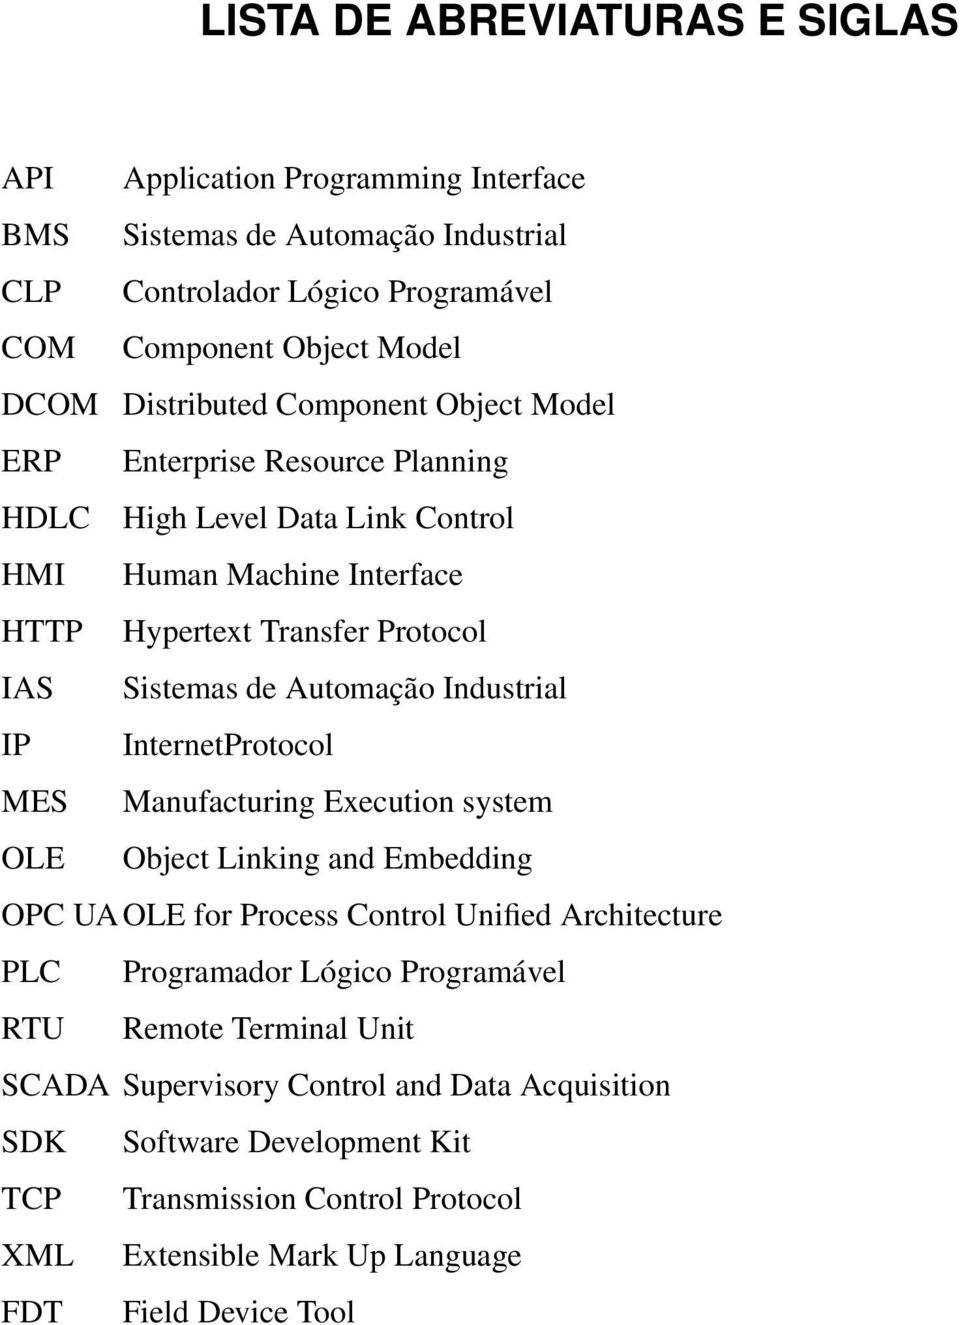 Automação Industrial IP InternetProtocol MES Manufacturing Execution system OLE Object Linking and Embedding OPC UAOLE for Process Control Unified Architecture PLC Programador Lógico